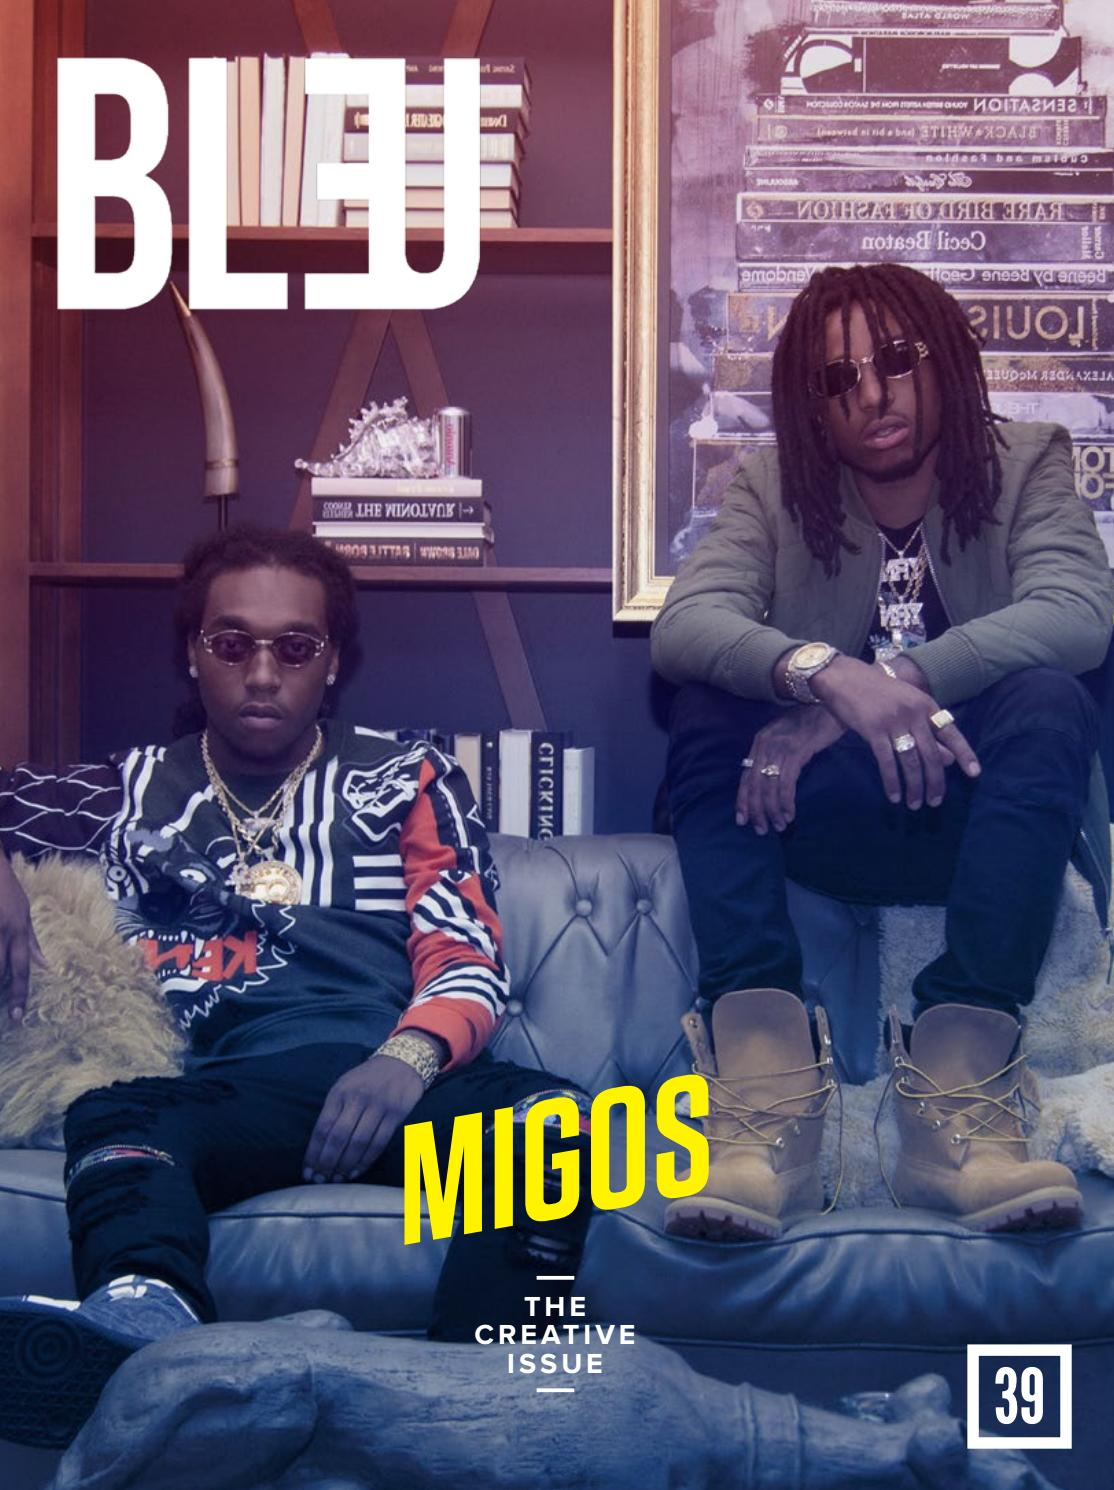 Bleu Magazine Issue 39- Migos by Bleu Magazine - issuu